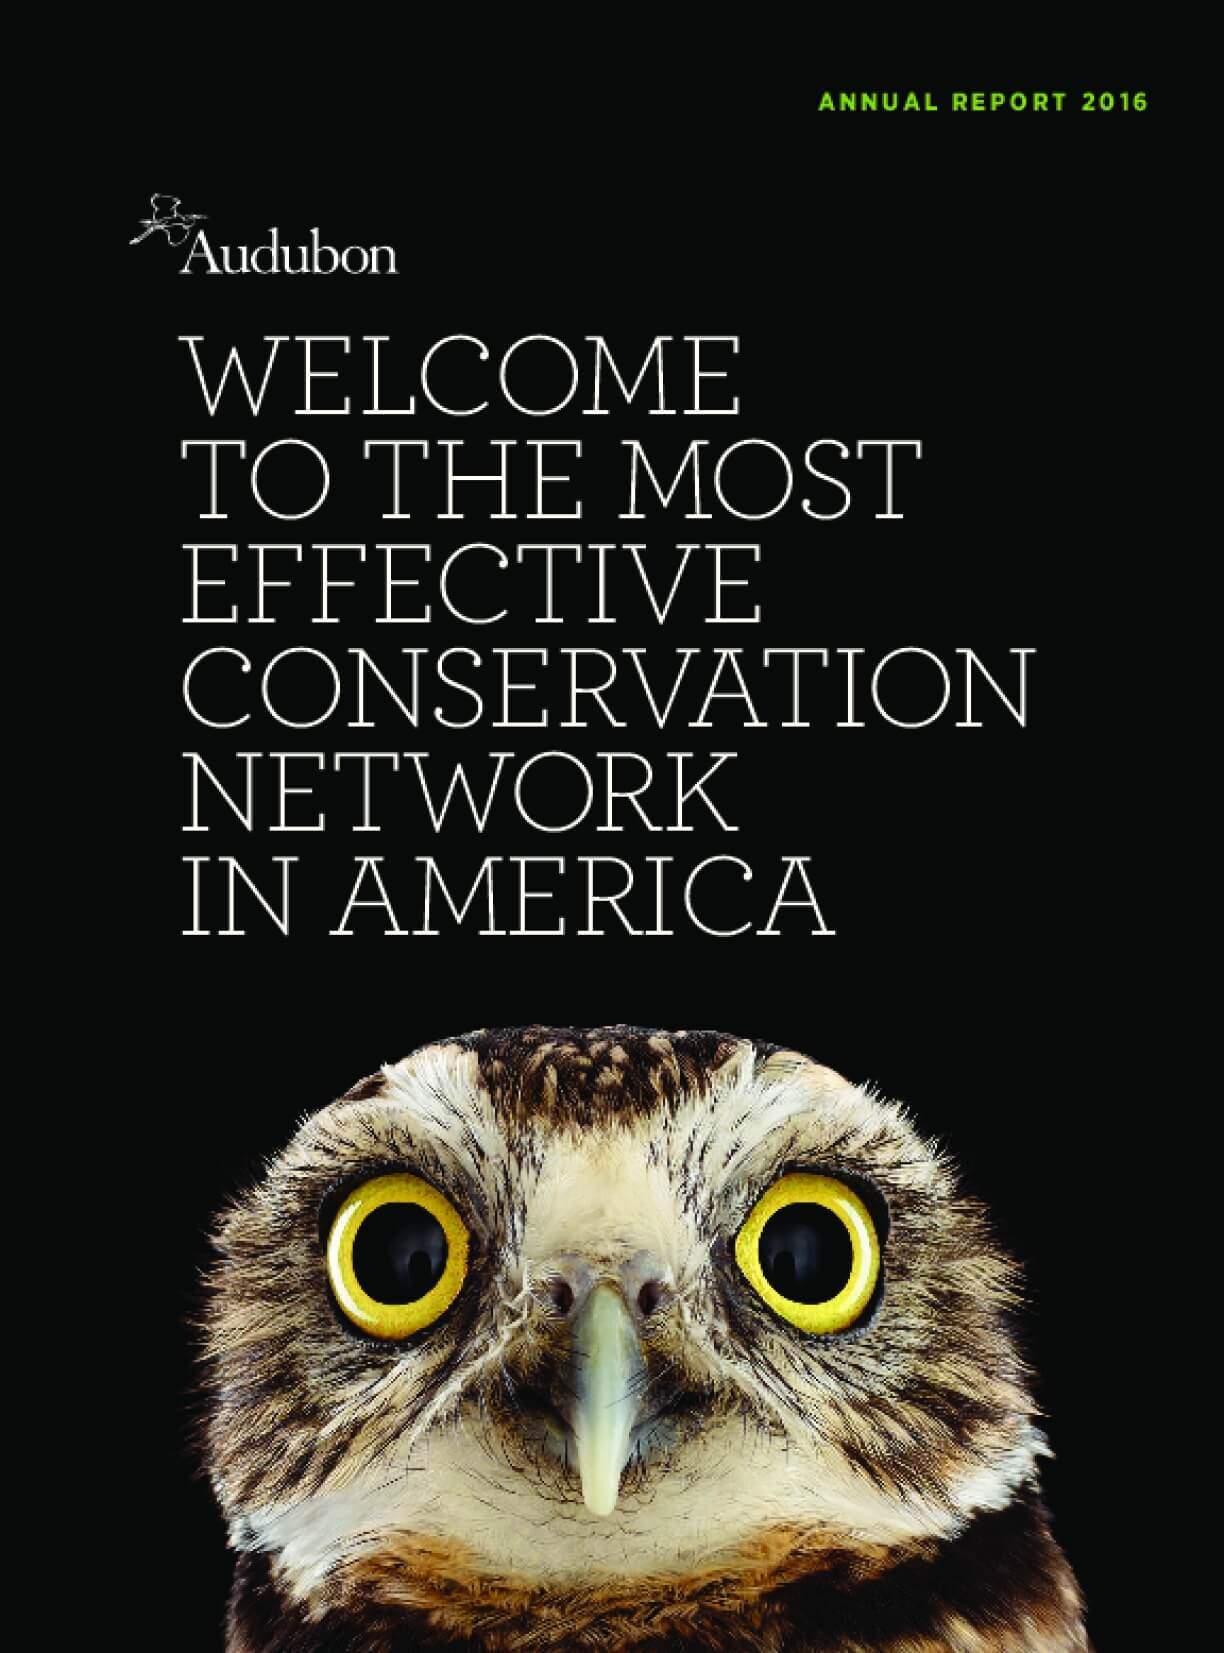 Audubon Annual Report 2016: Welcome to the Most Effective Conservation Network in America